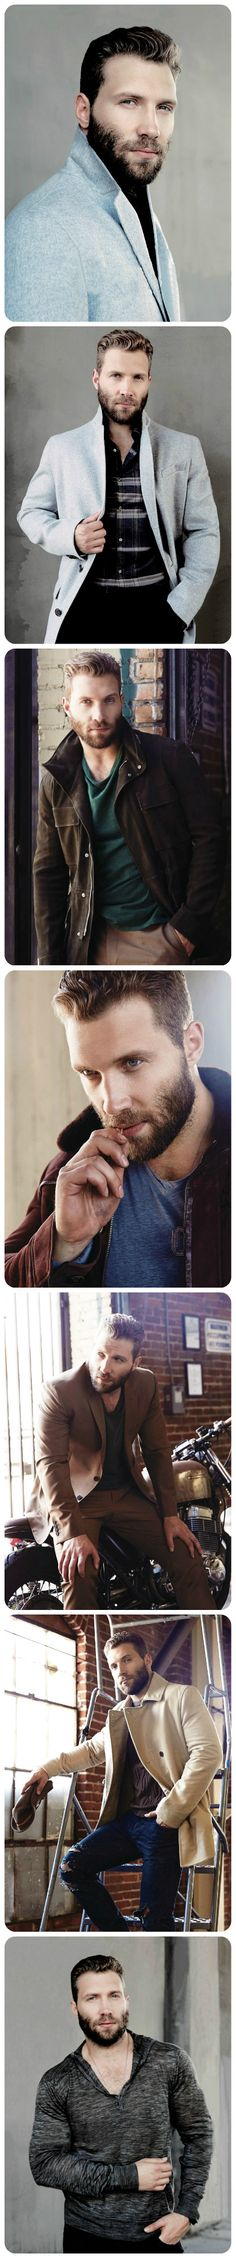 Jai Courtney for DuJour Magazine